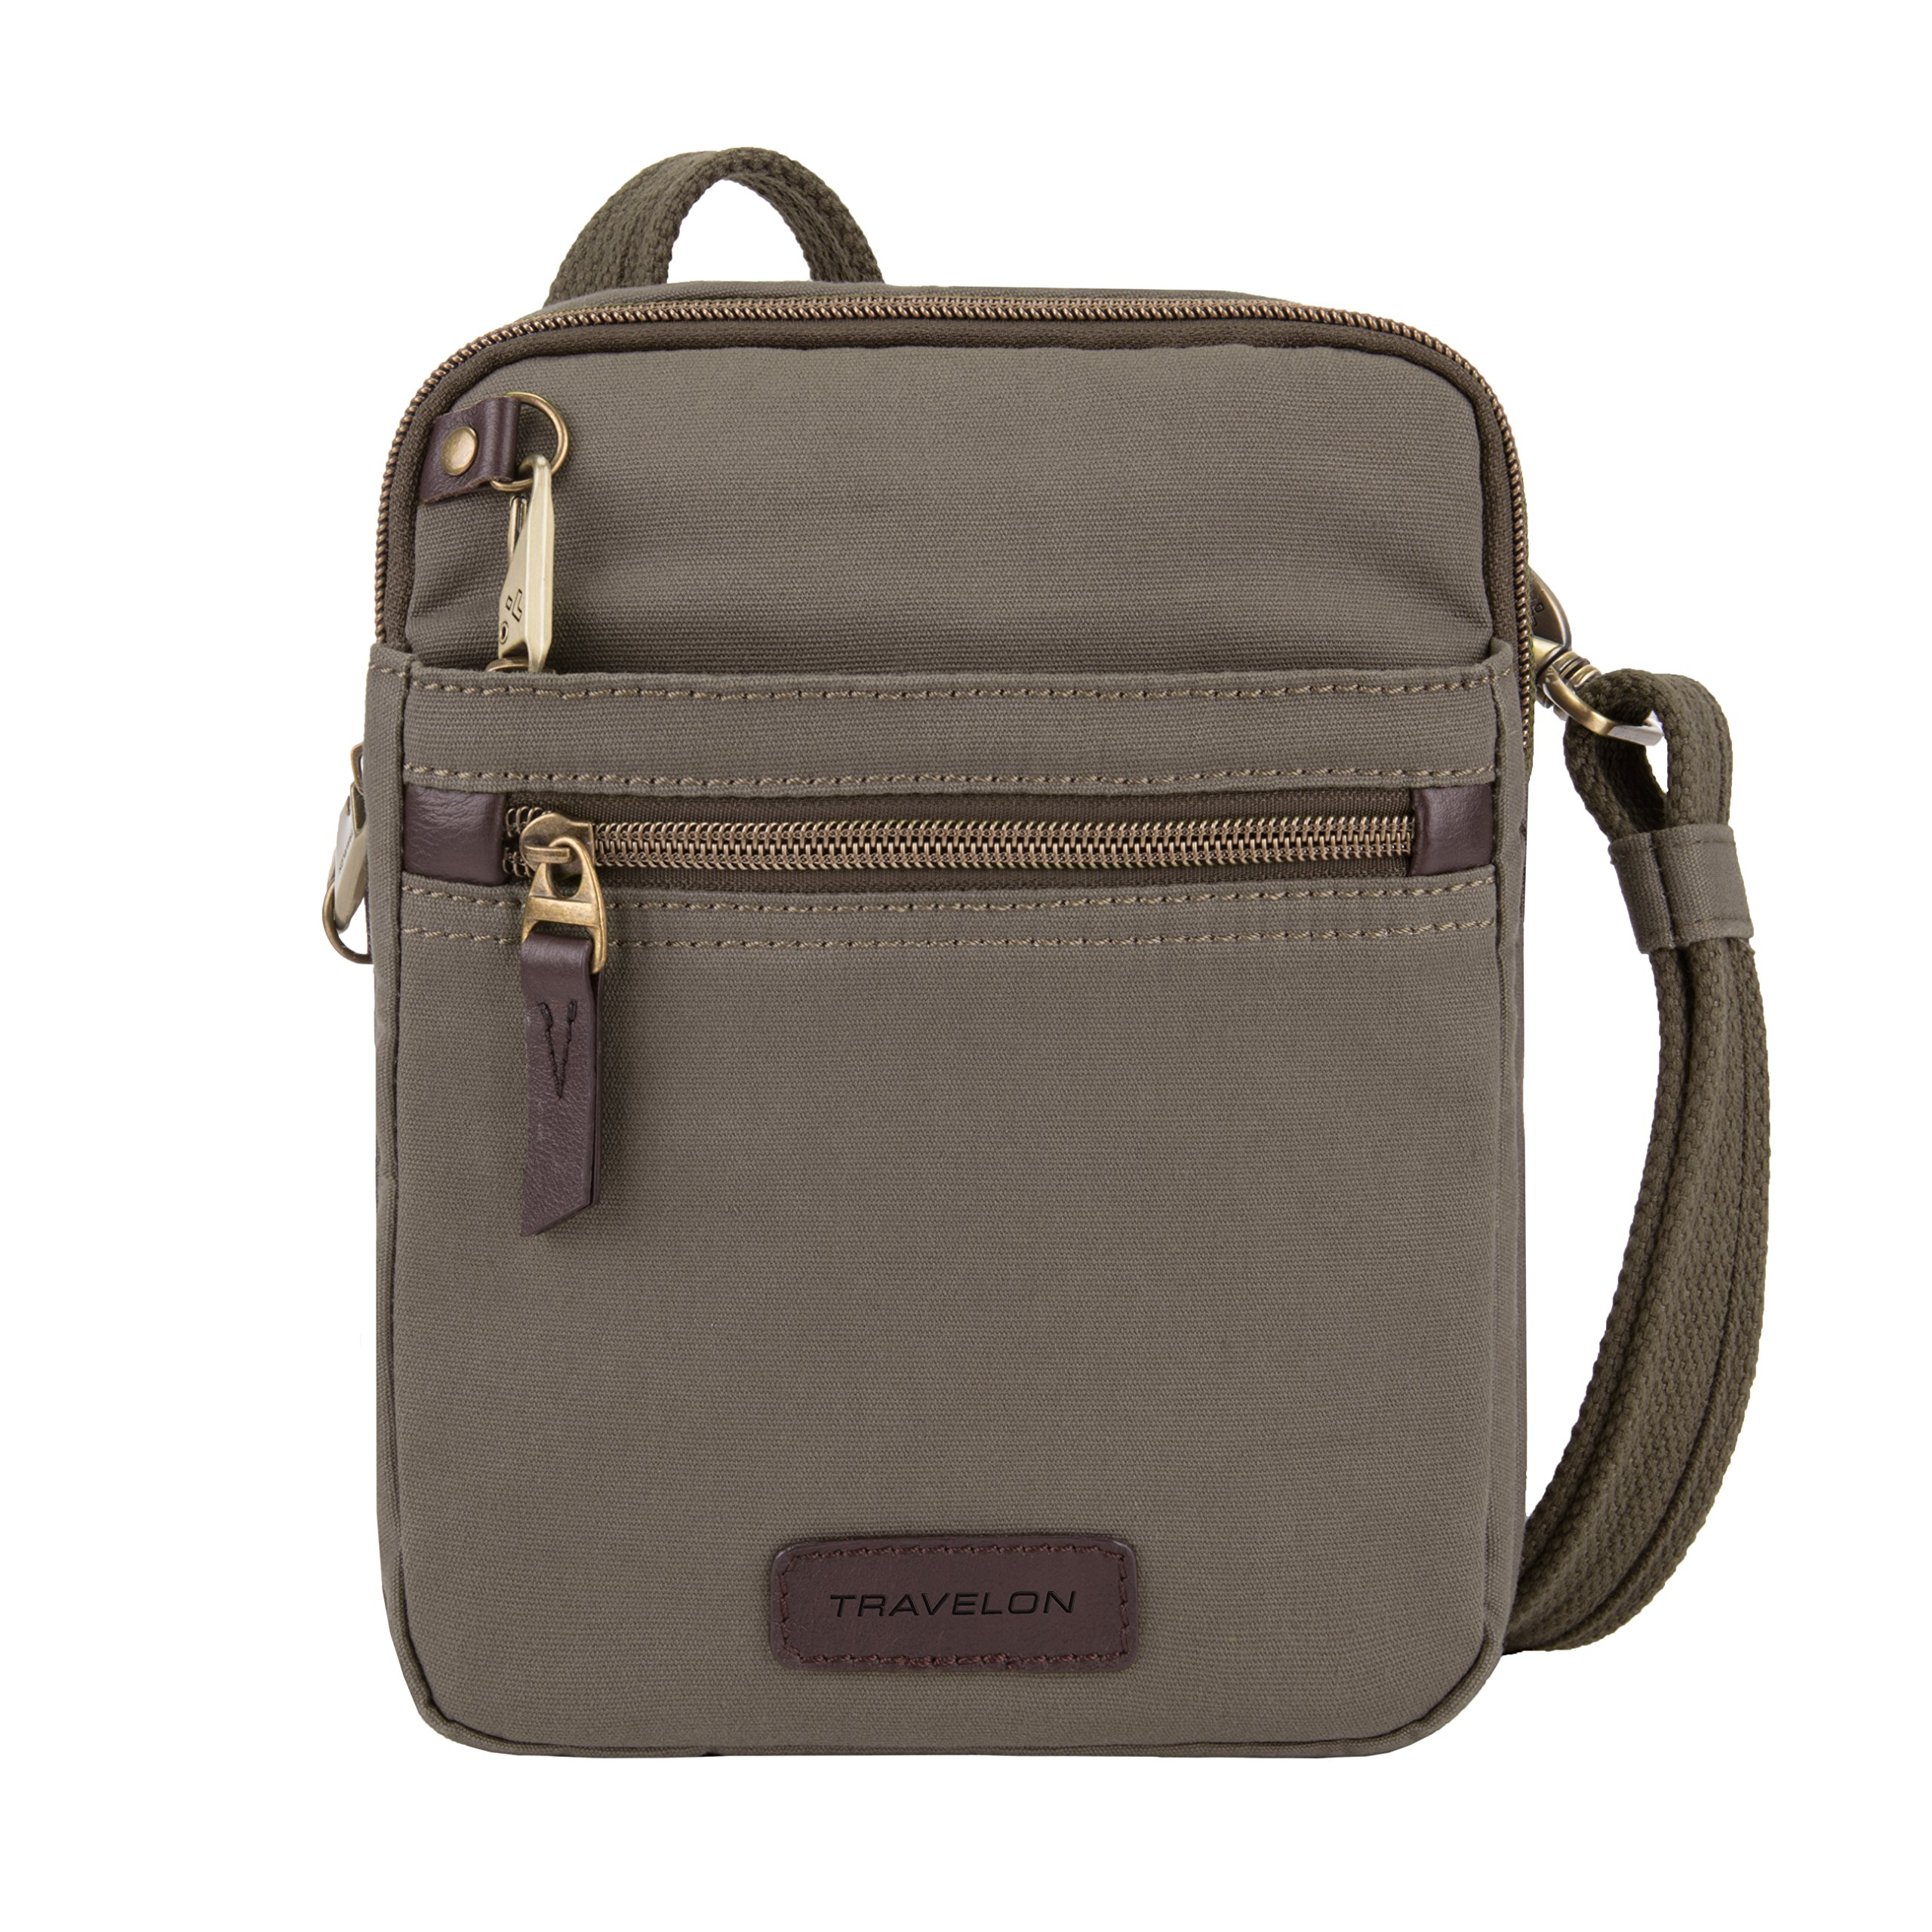 Travelon Anti-Theft Courier Small N/s Slim Travel Tote, Stone Gray, One Size